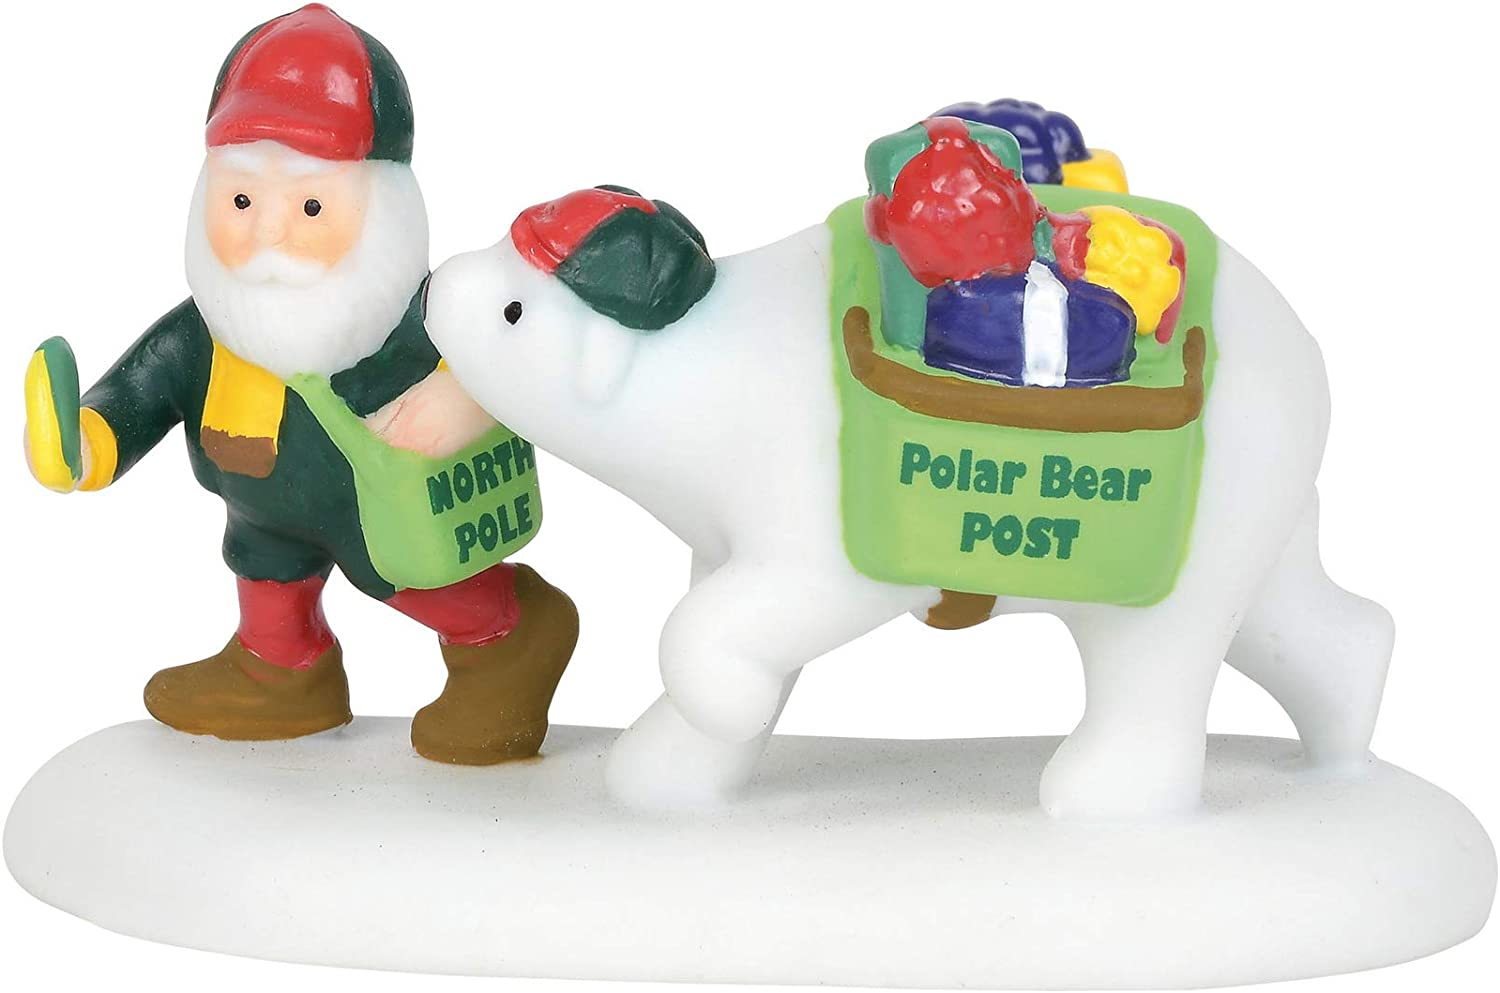 Department 56 North Pole Village Accessories Polar Bear Post Figurine, 1.5 Inch, Multicolor